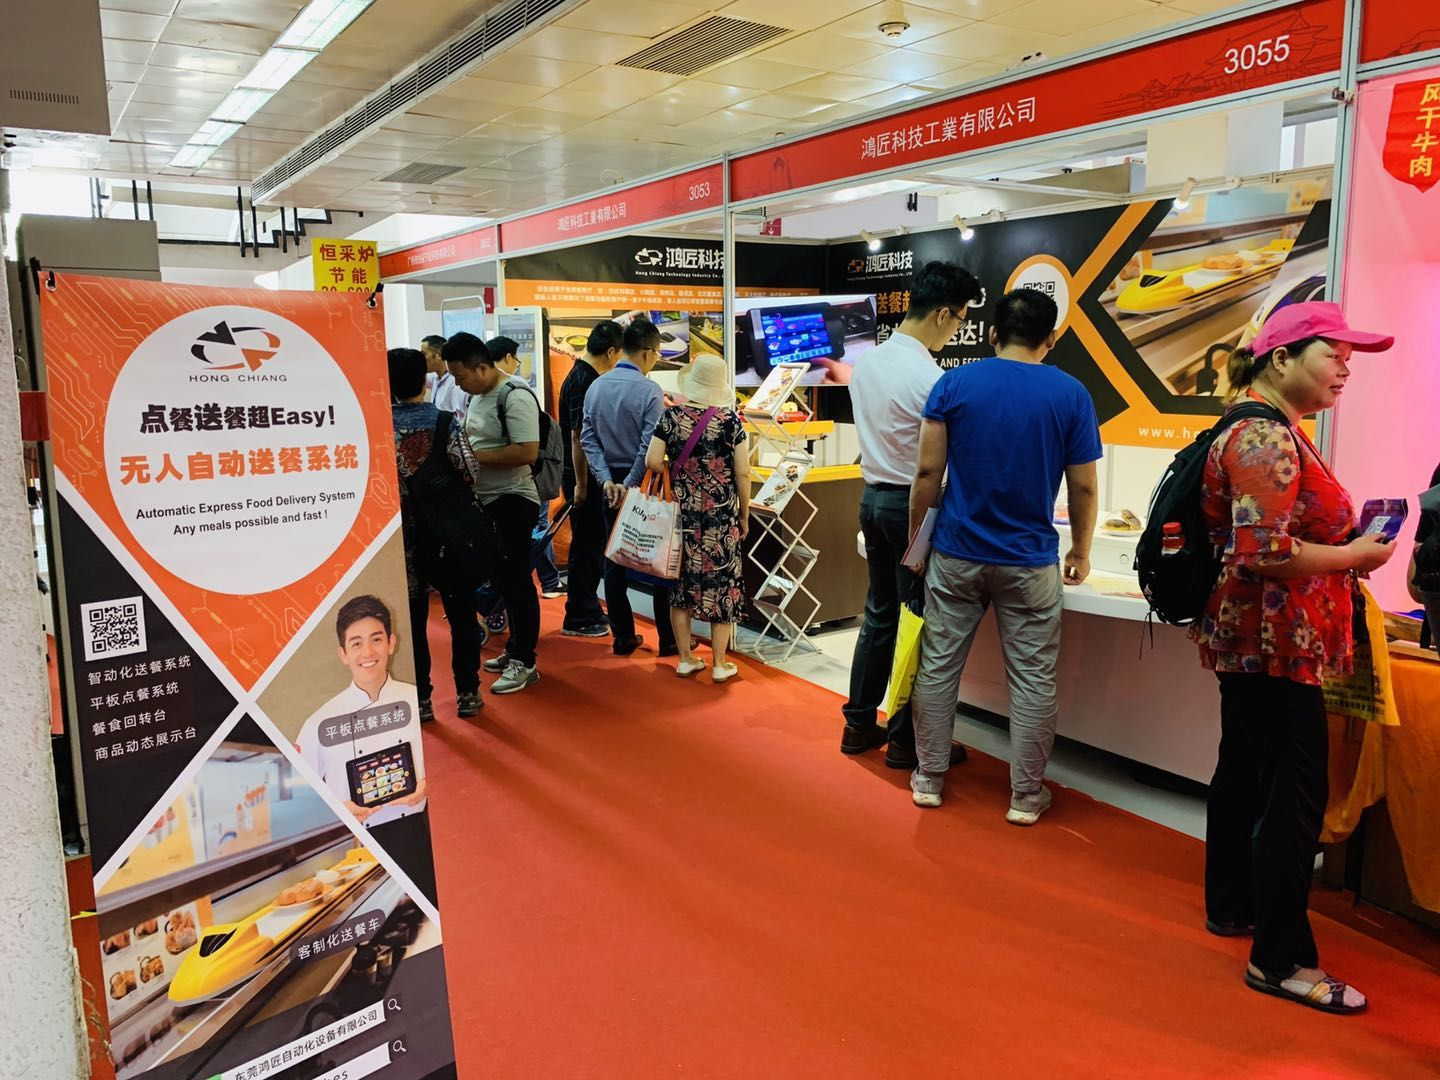 2019 Beijing Hospitality Supplies & Catering Expo was finished and